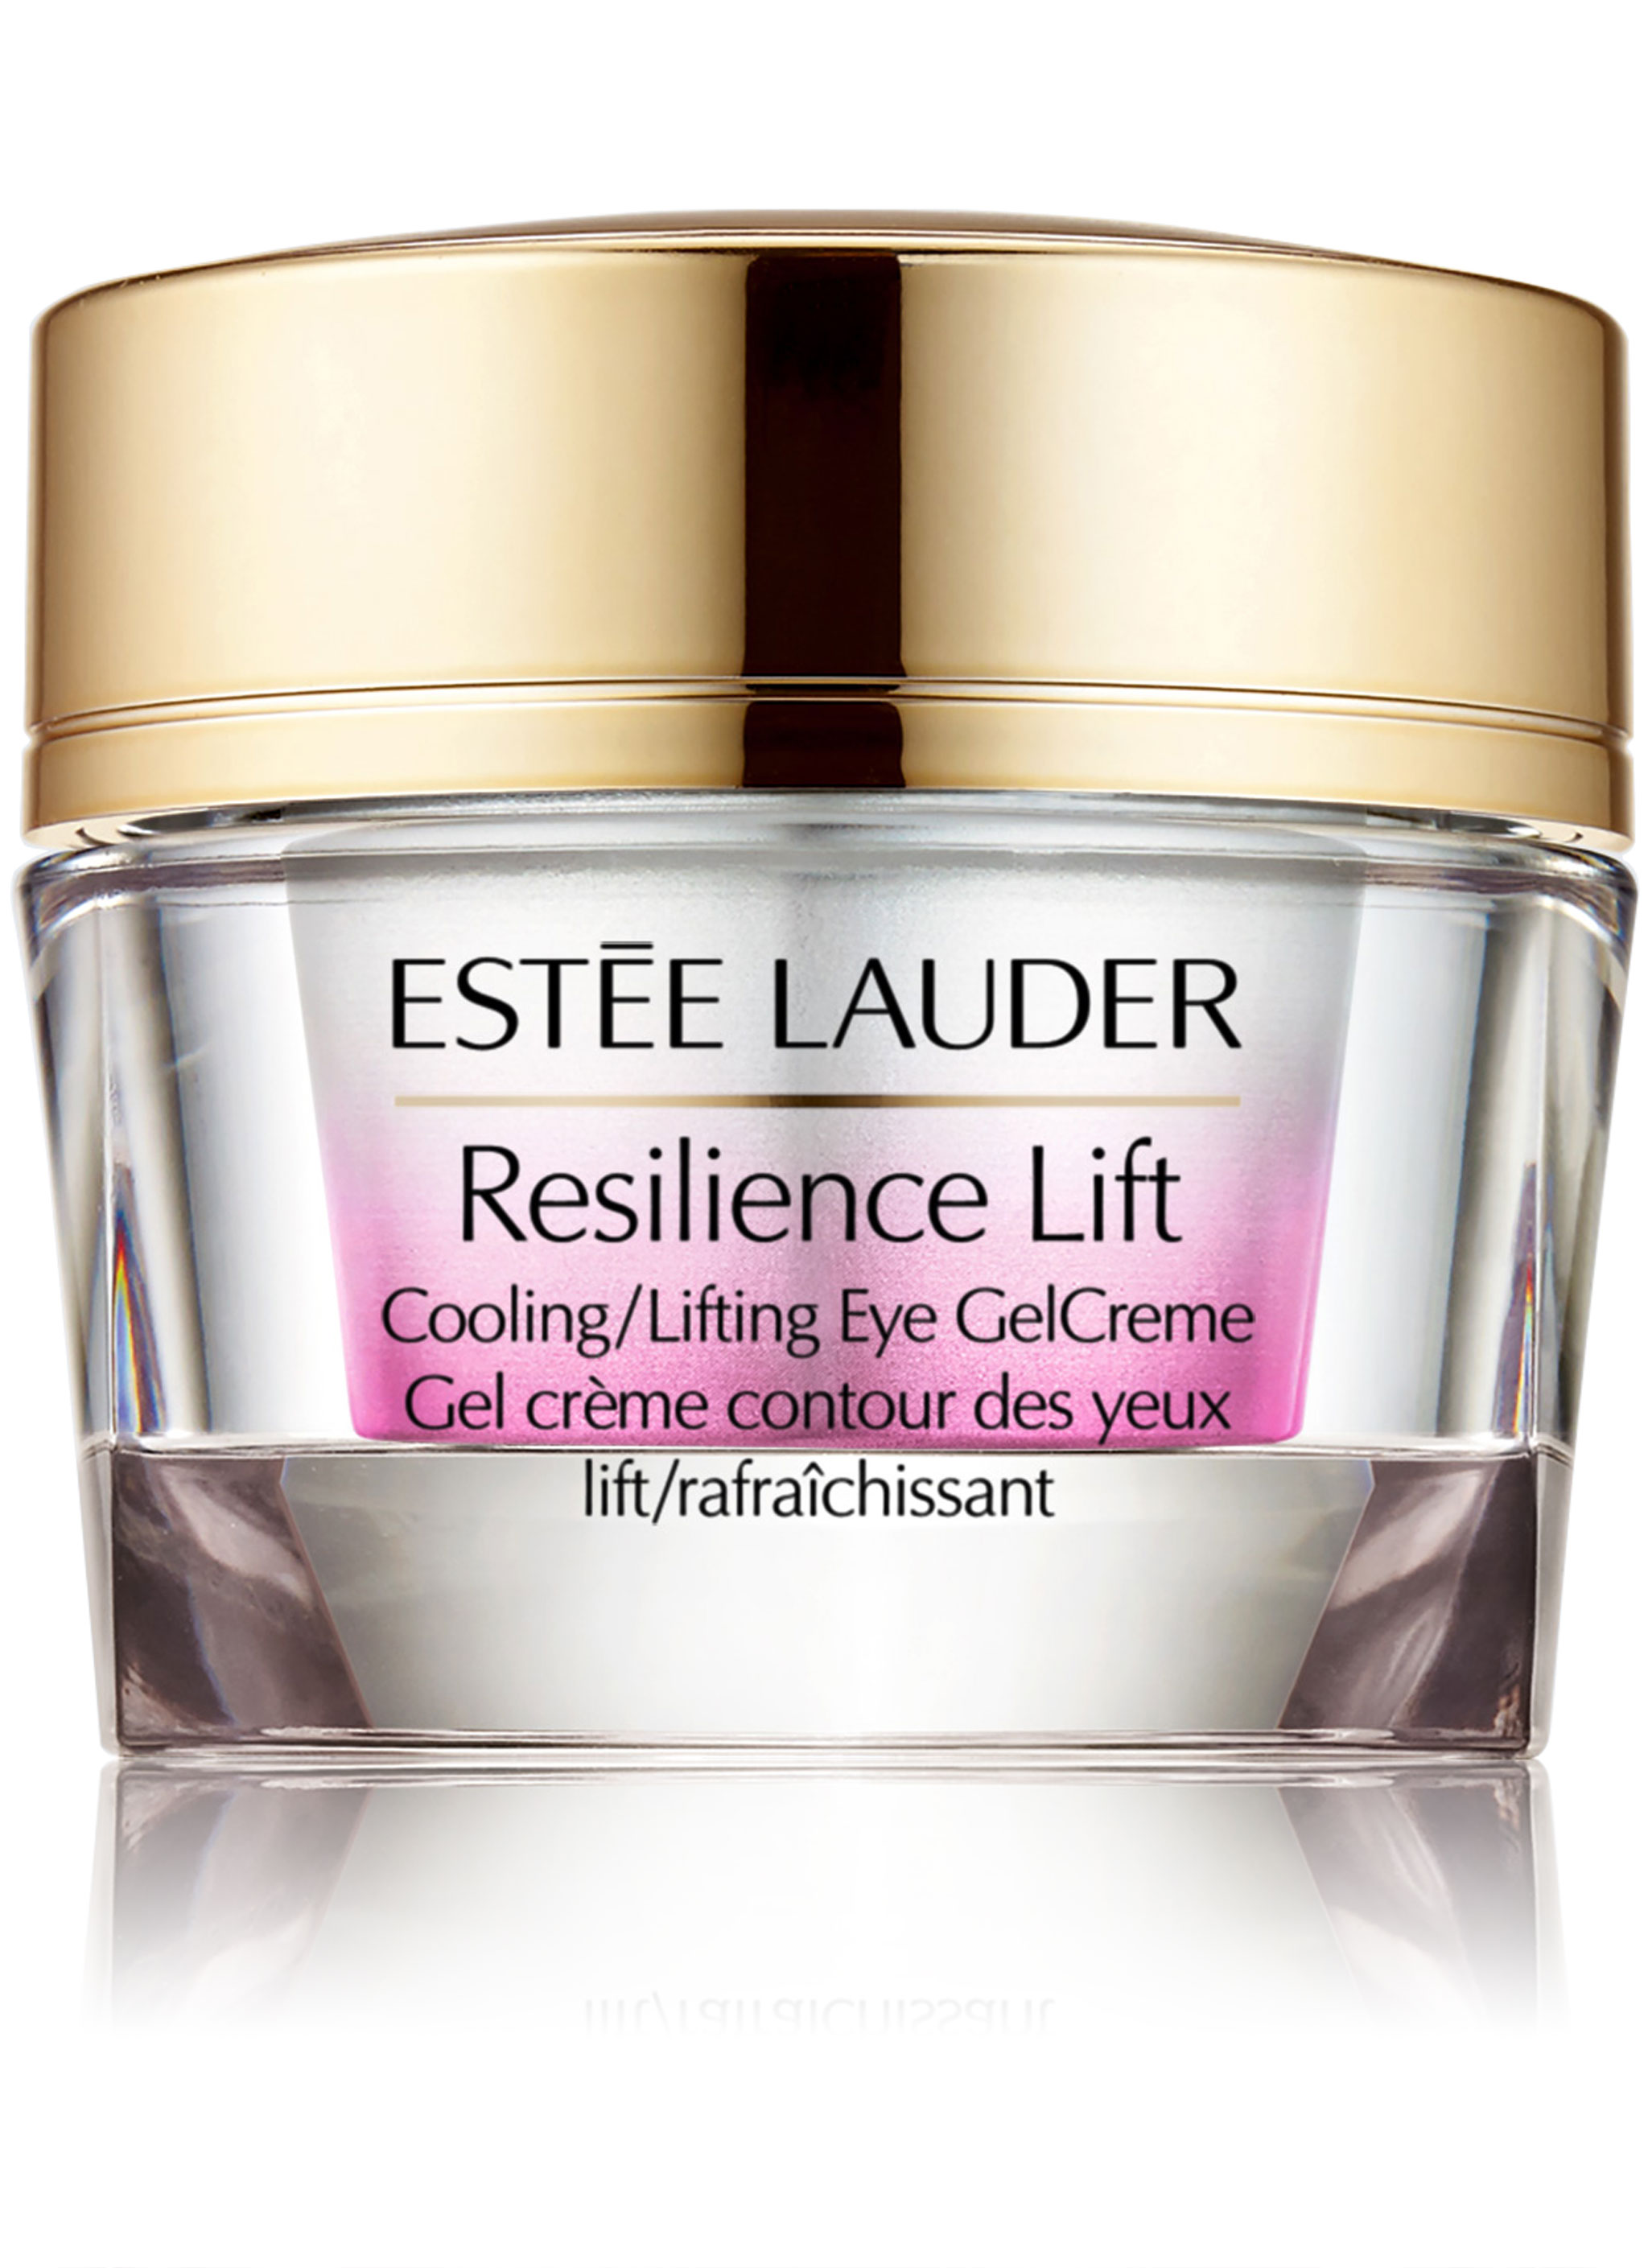 Resilience Lift Cooling/Lifting Eye Gel Creme